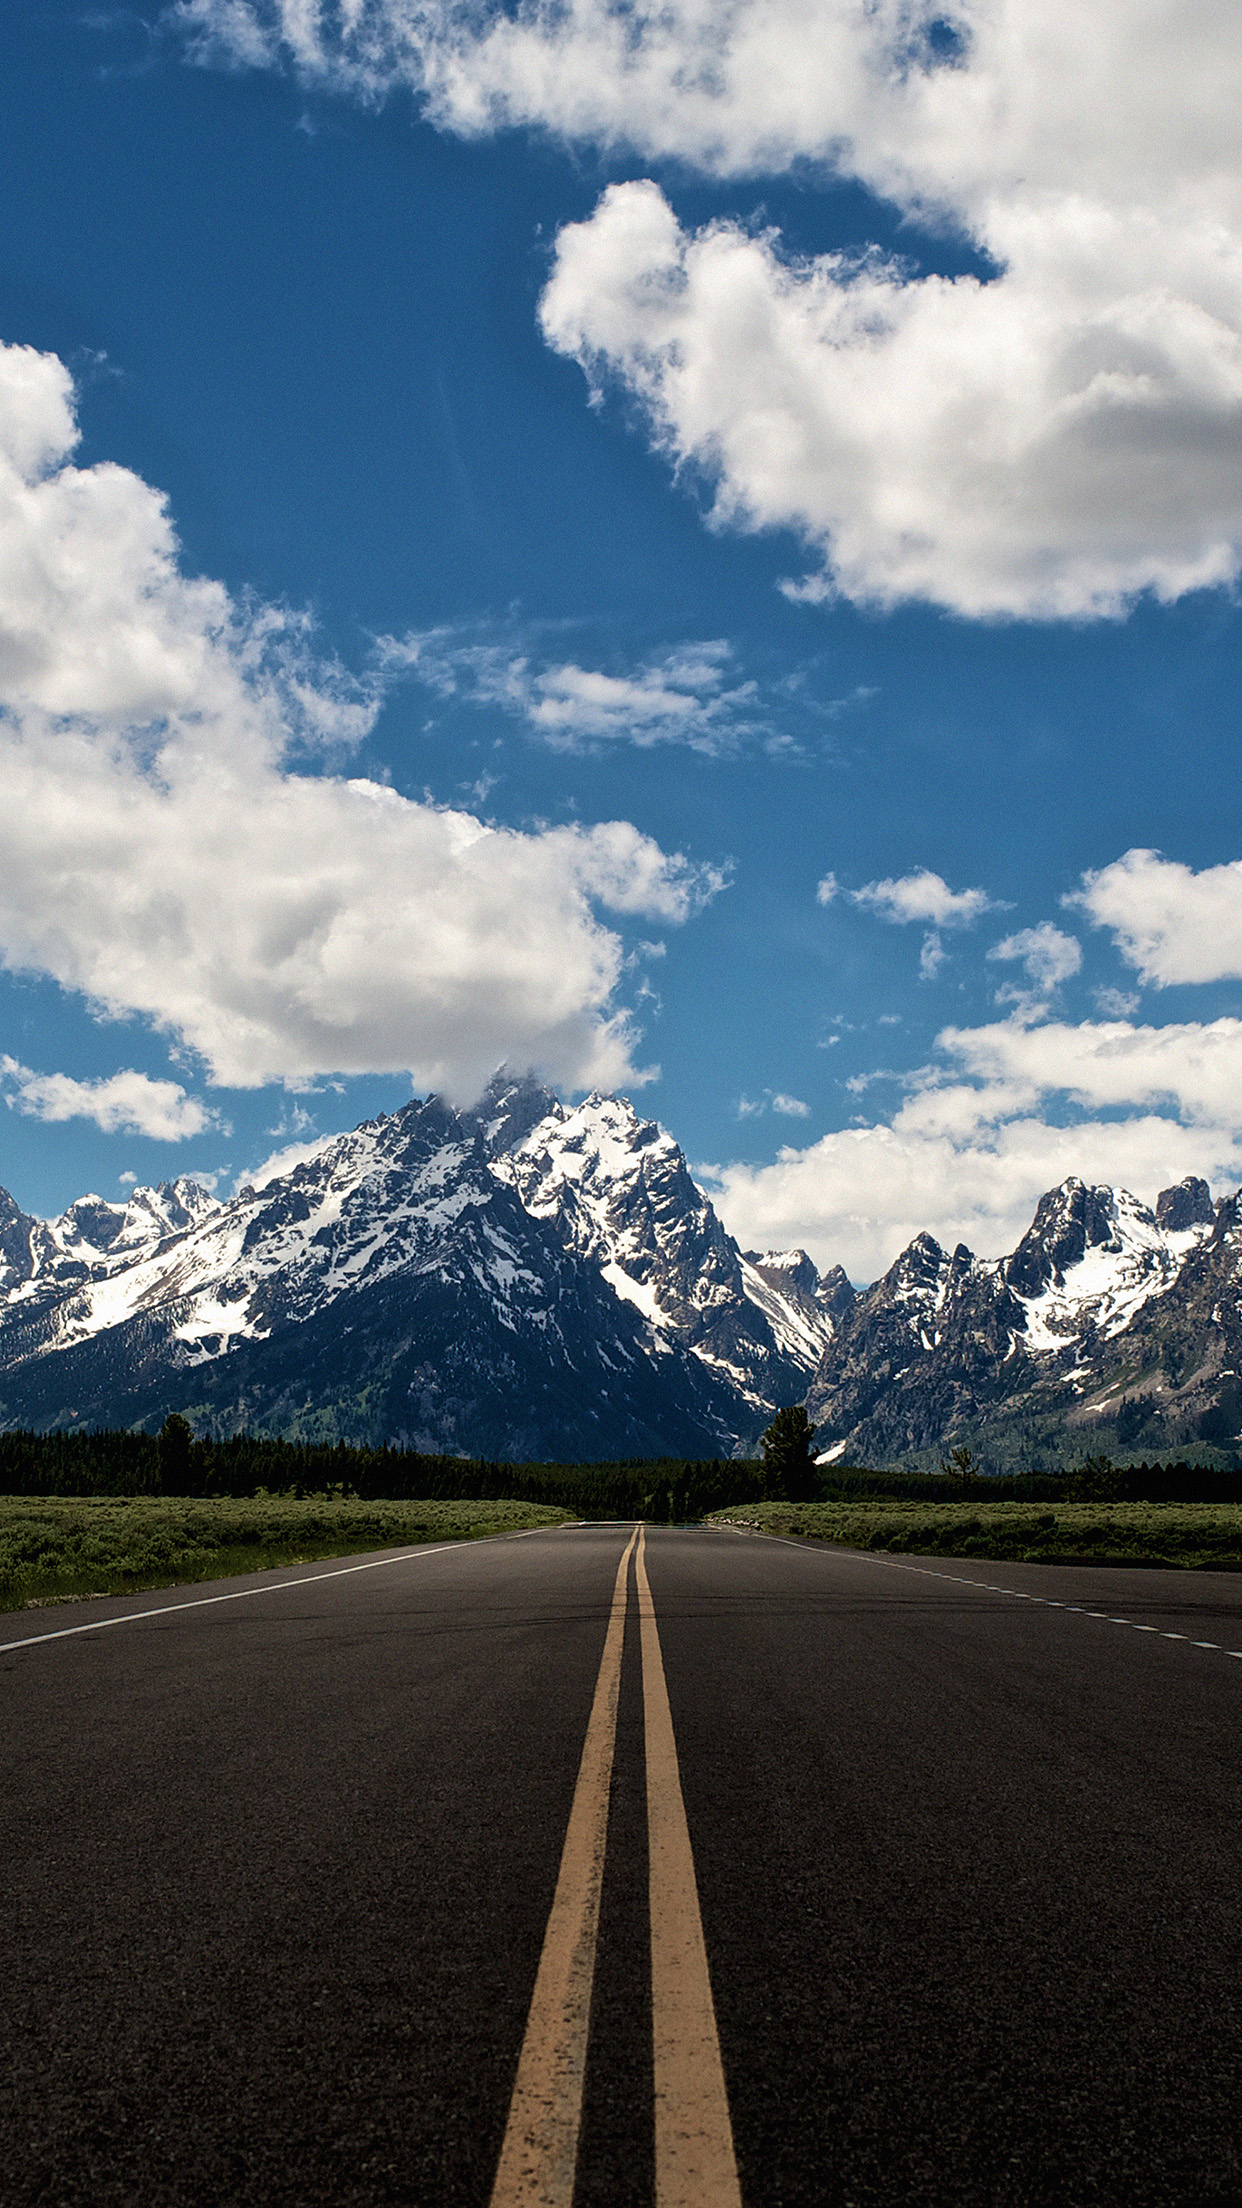 montagne autoroute 3Wallpapers iPhone Parallax Mountains Highway